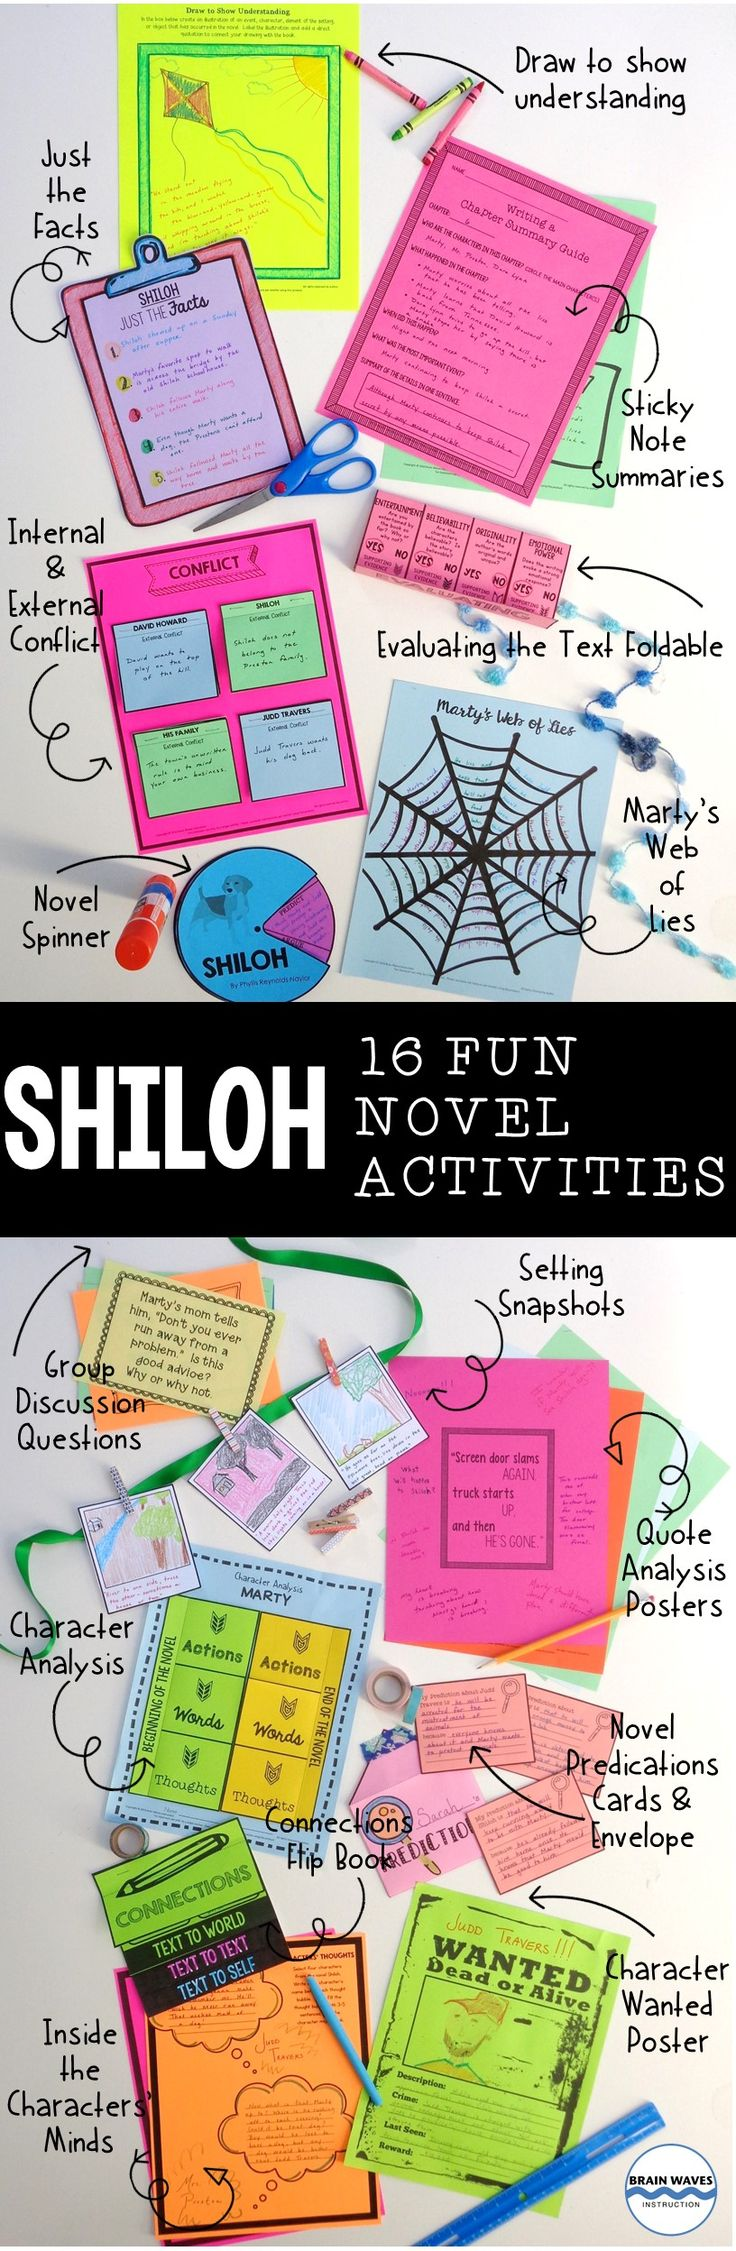 medium resolution of Shiloh Lessons and Activities - 16 Engaging Chapter-by-Chapter Activities    Novel activities